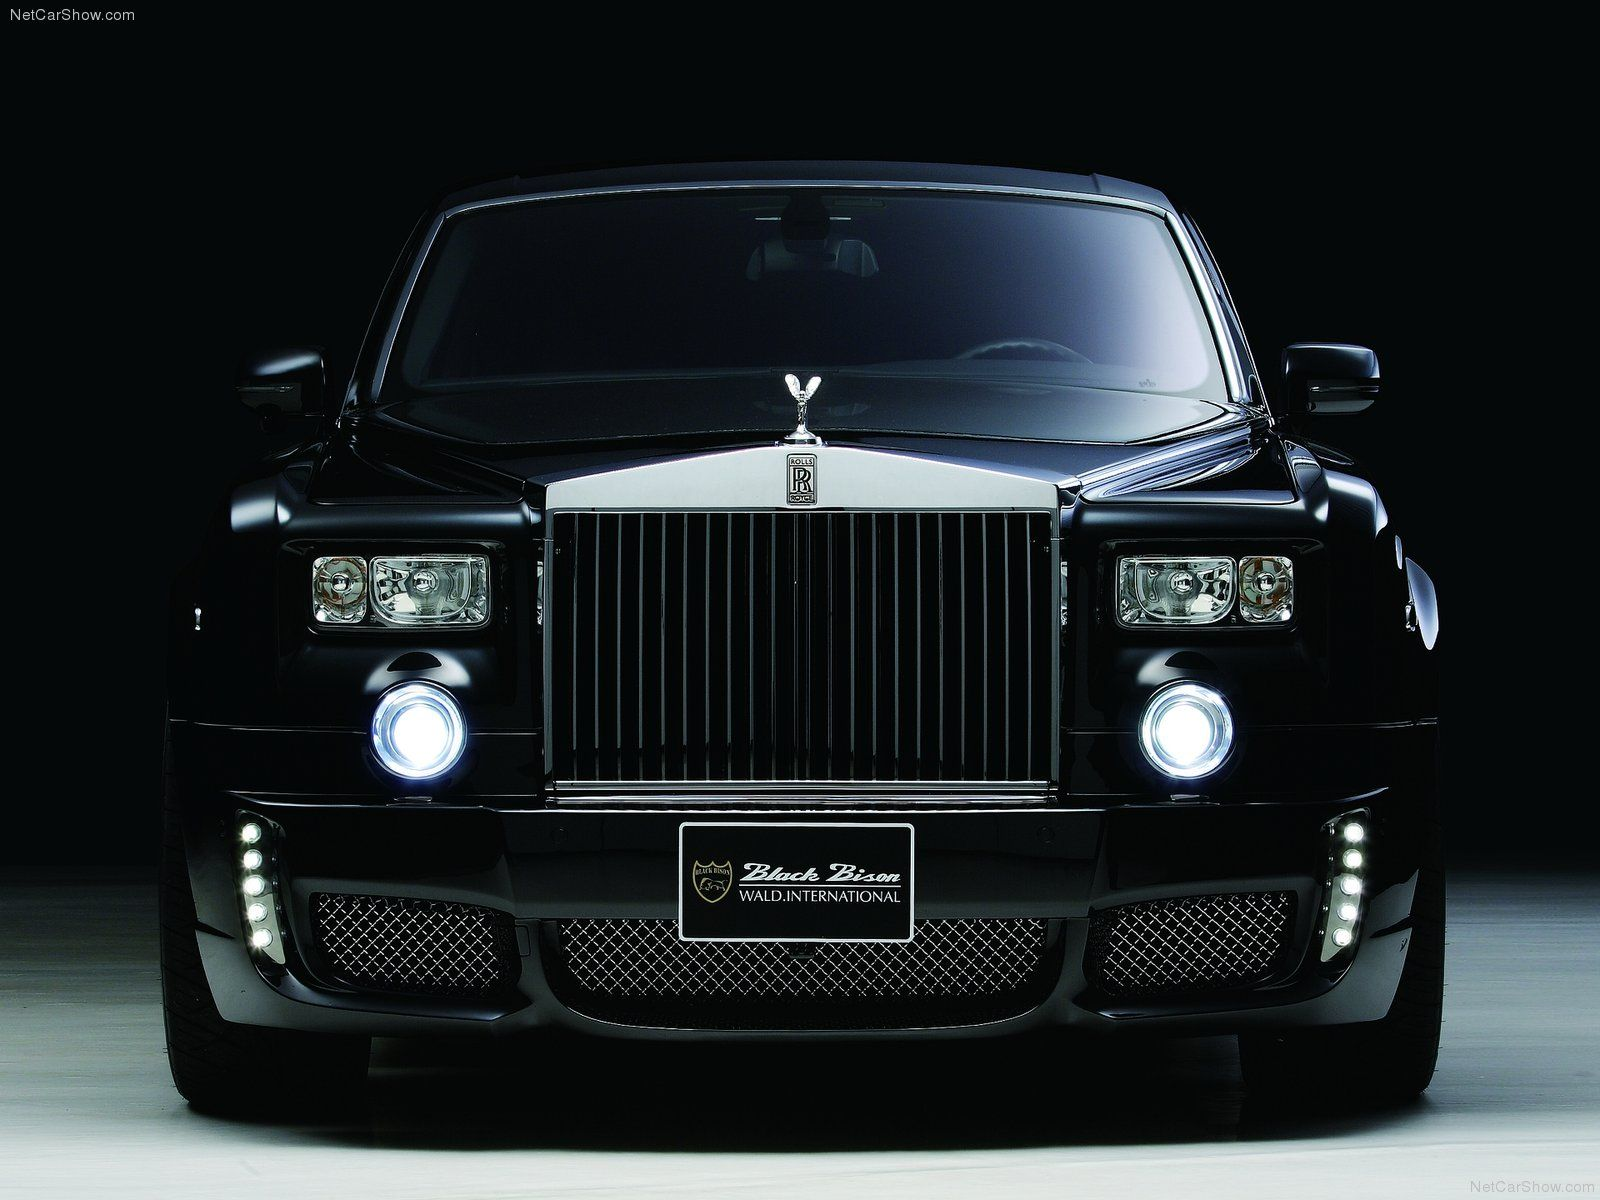 rolls royce black color images for desktop hd wallpaper | yoga